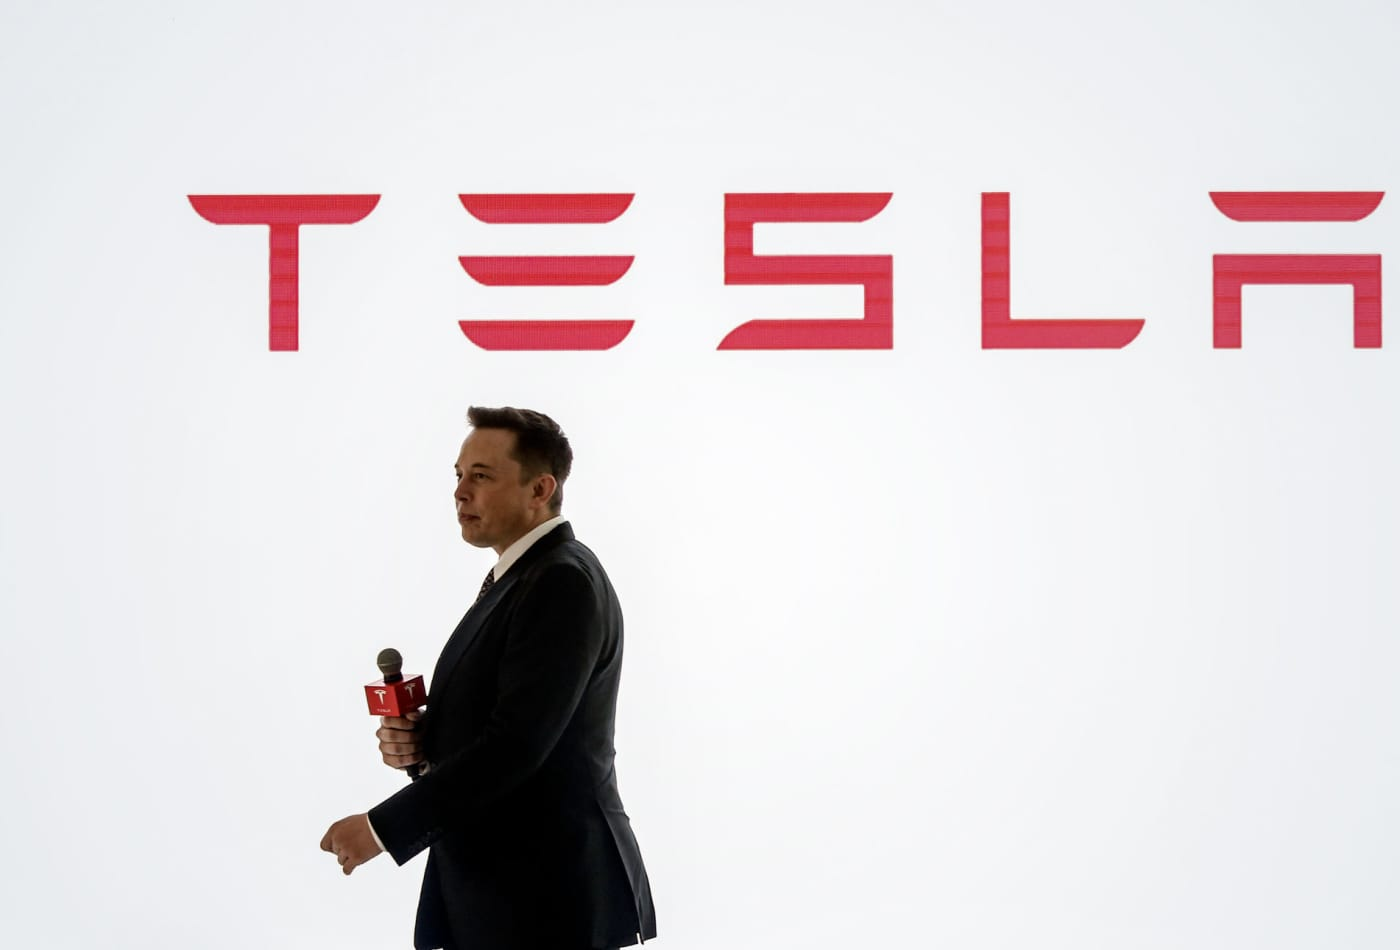 Cramer sees 'huge positives' on Tesla's Battery Day, tells investors to be patient on stock